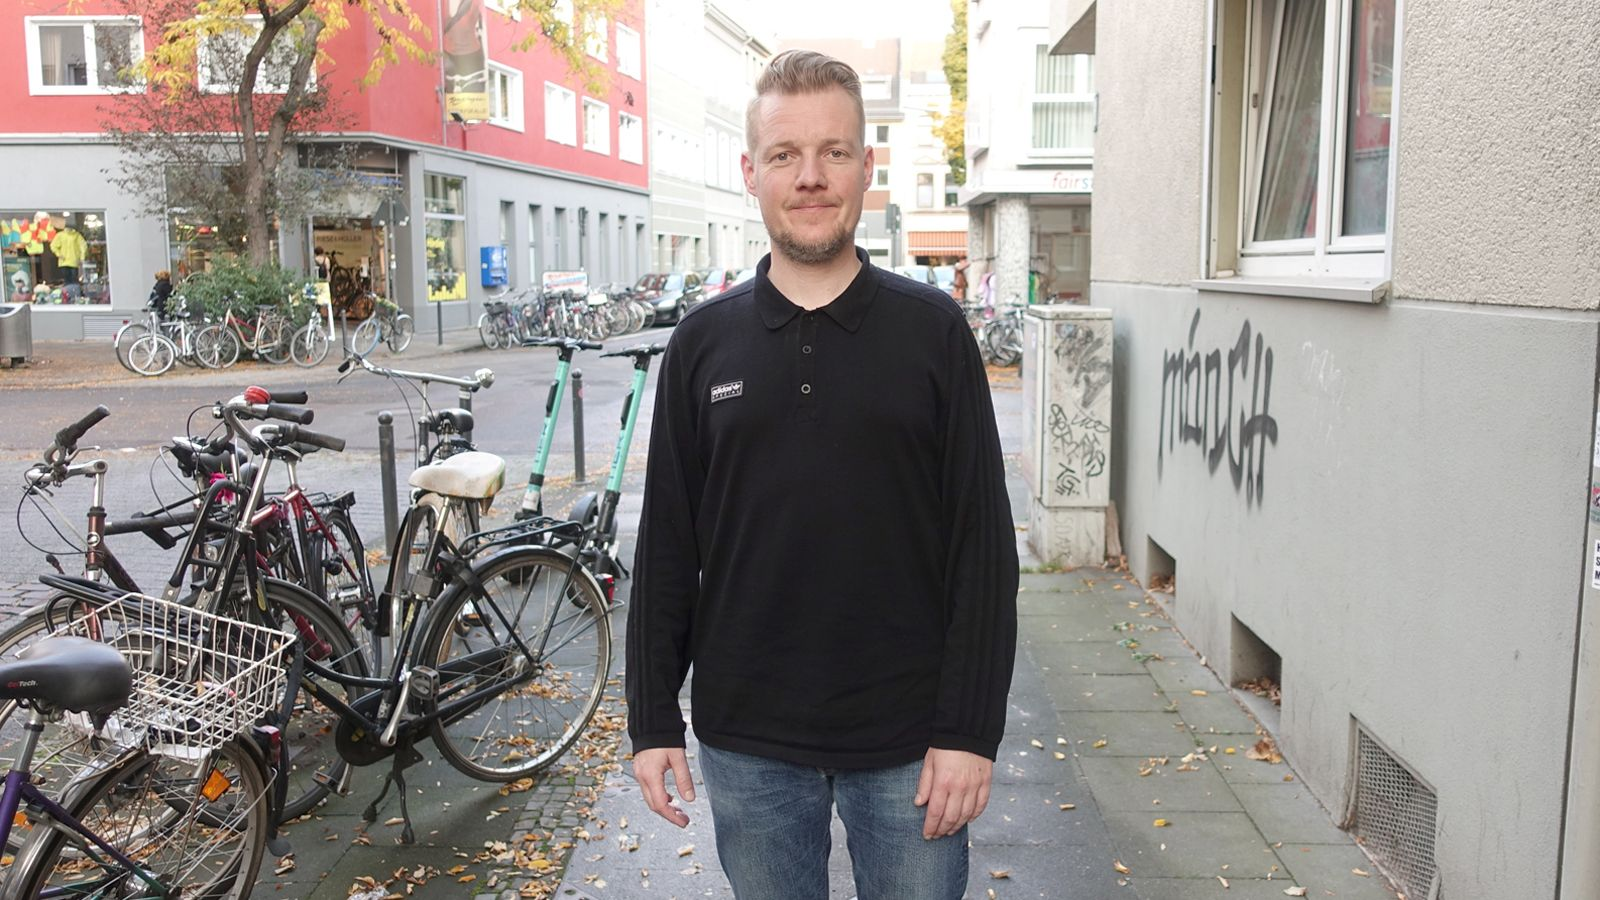 Themes For Great Cities Radioshow w/ Rearview Radio & Hans Immer (October 2020)